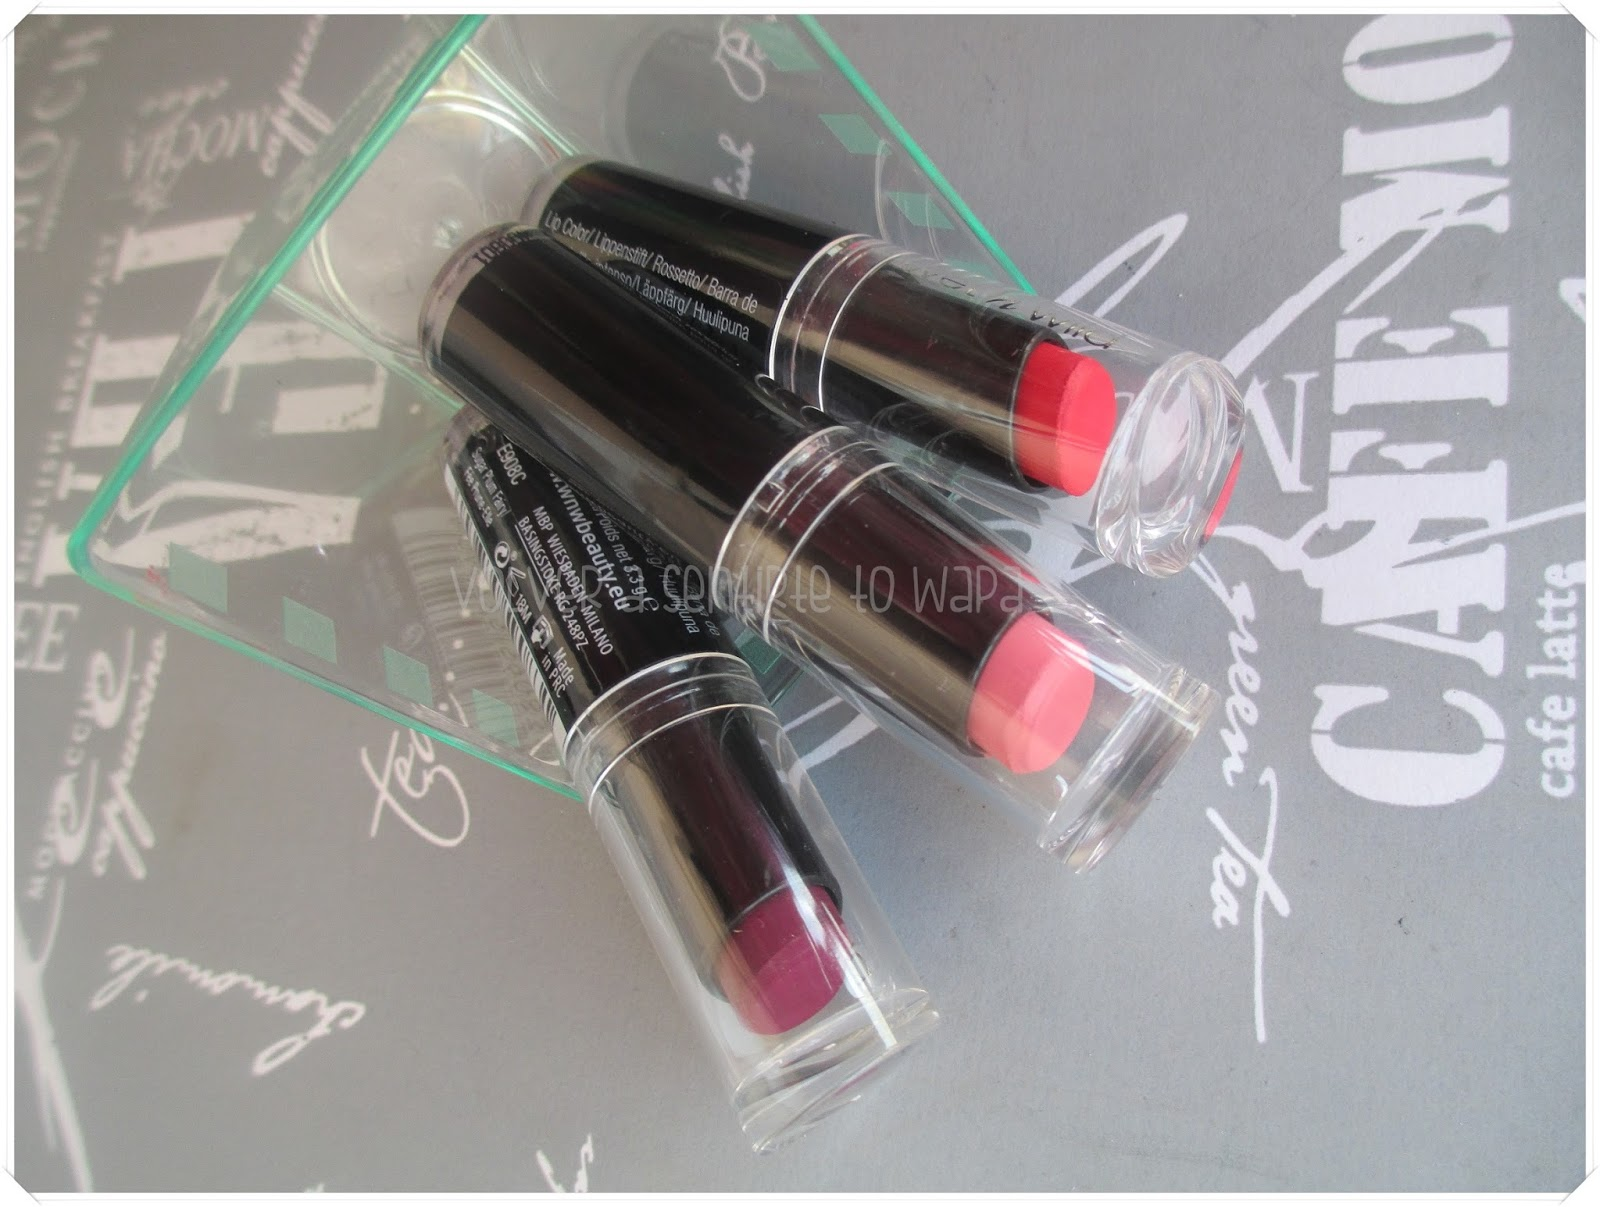 Labiales MegaLast Lip Color de Wet n' Wild